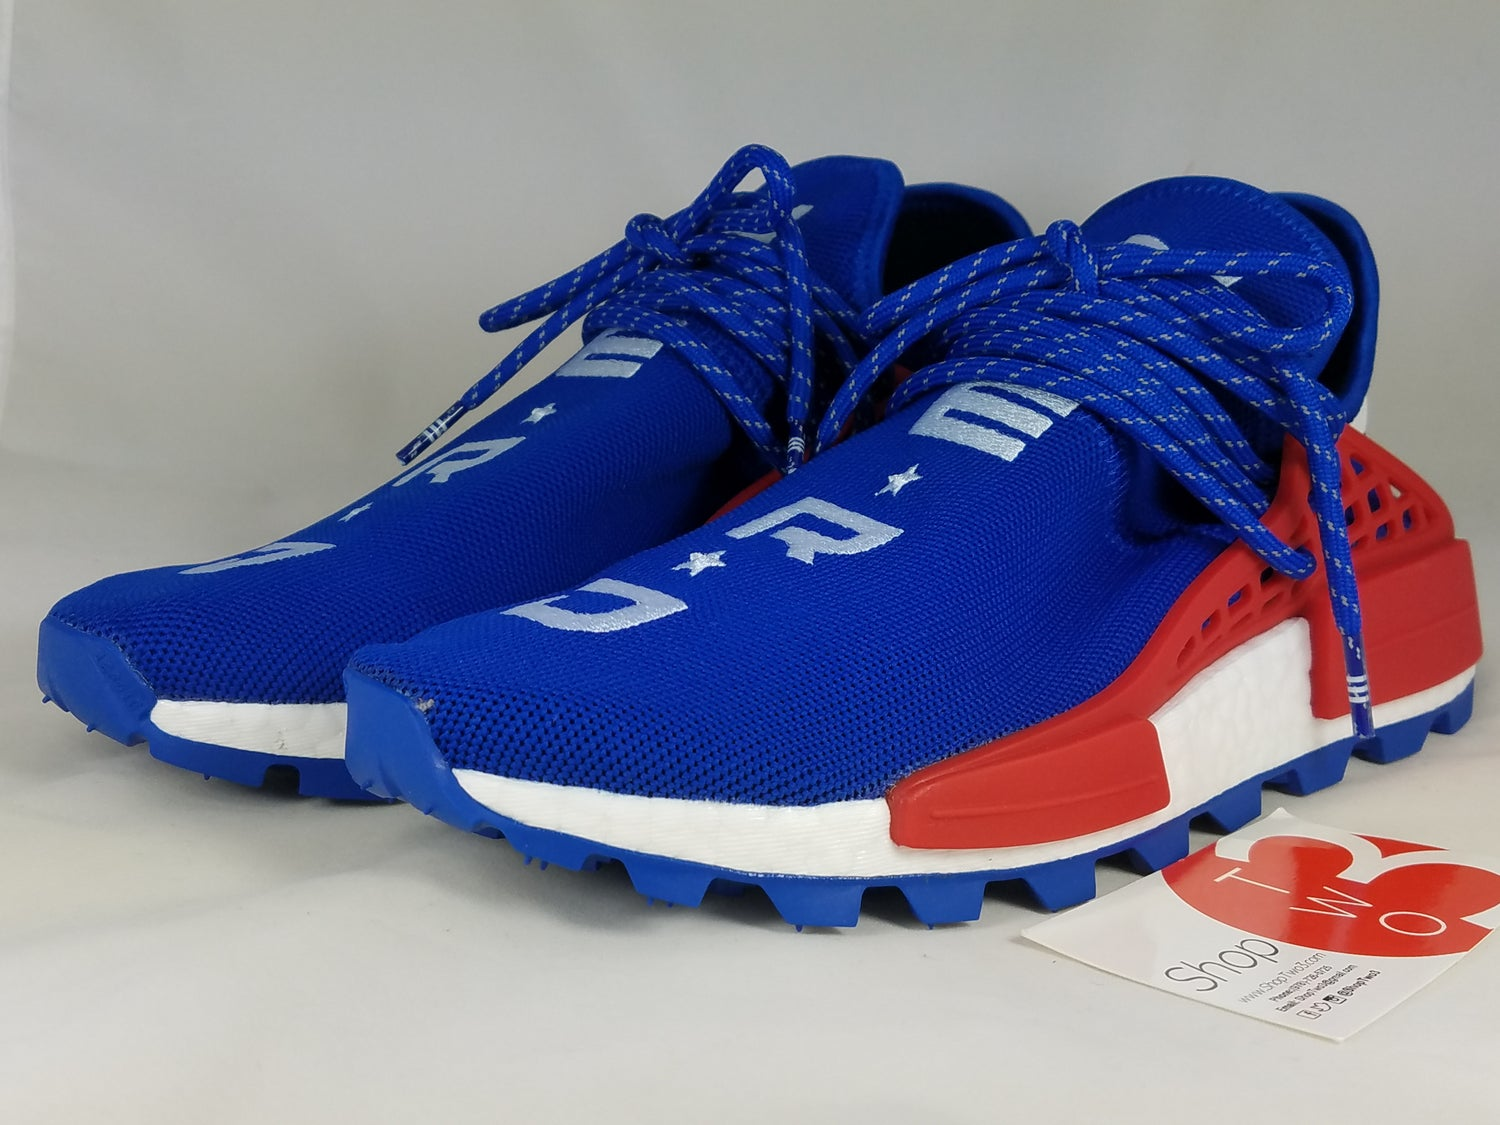 premium selection bfc26 891a7 PW HU NMD Nerd